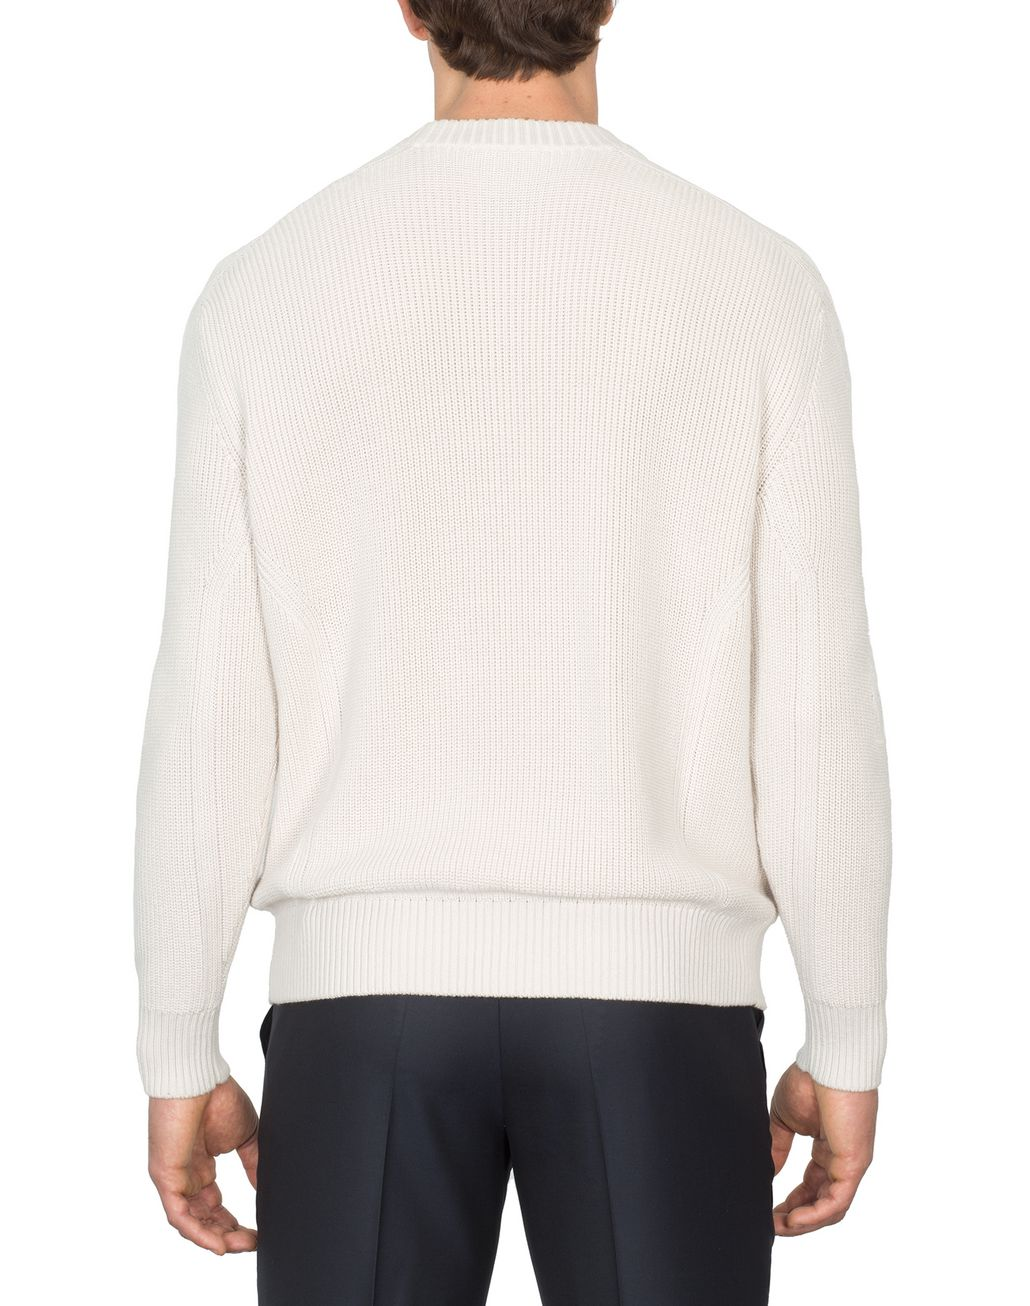 BRIONI Ivory Oversized Fit Sweater Knitwear [*** pickupInStoreShippingNotGuaranteed_info ***] d